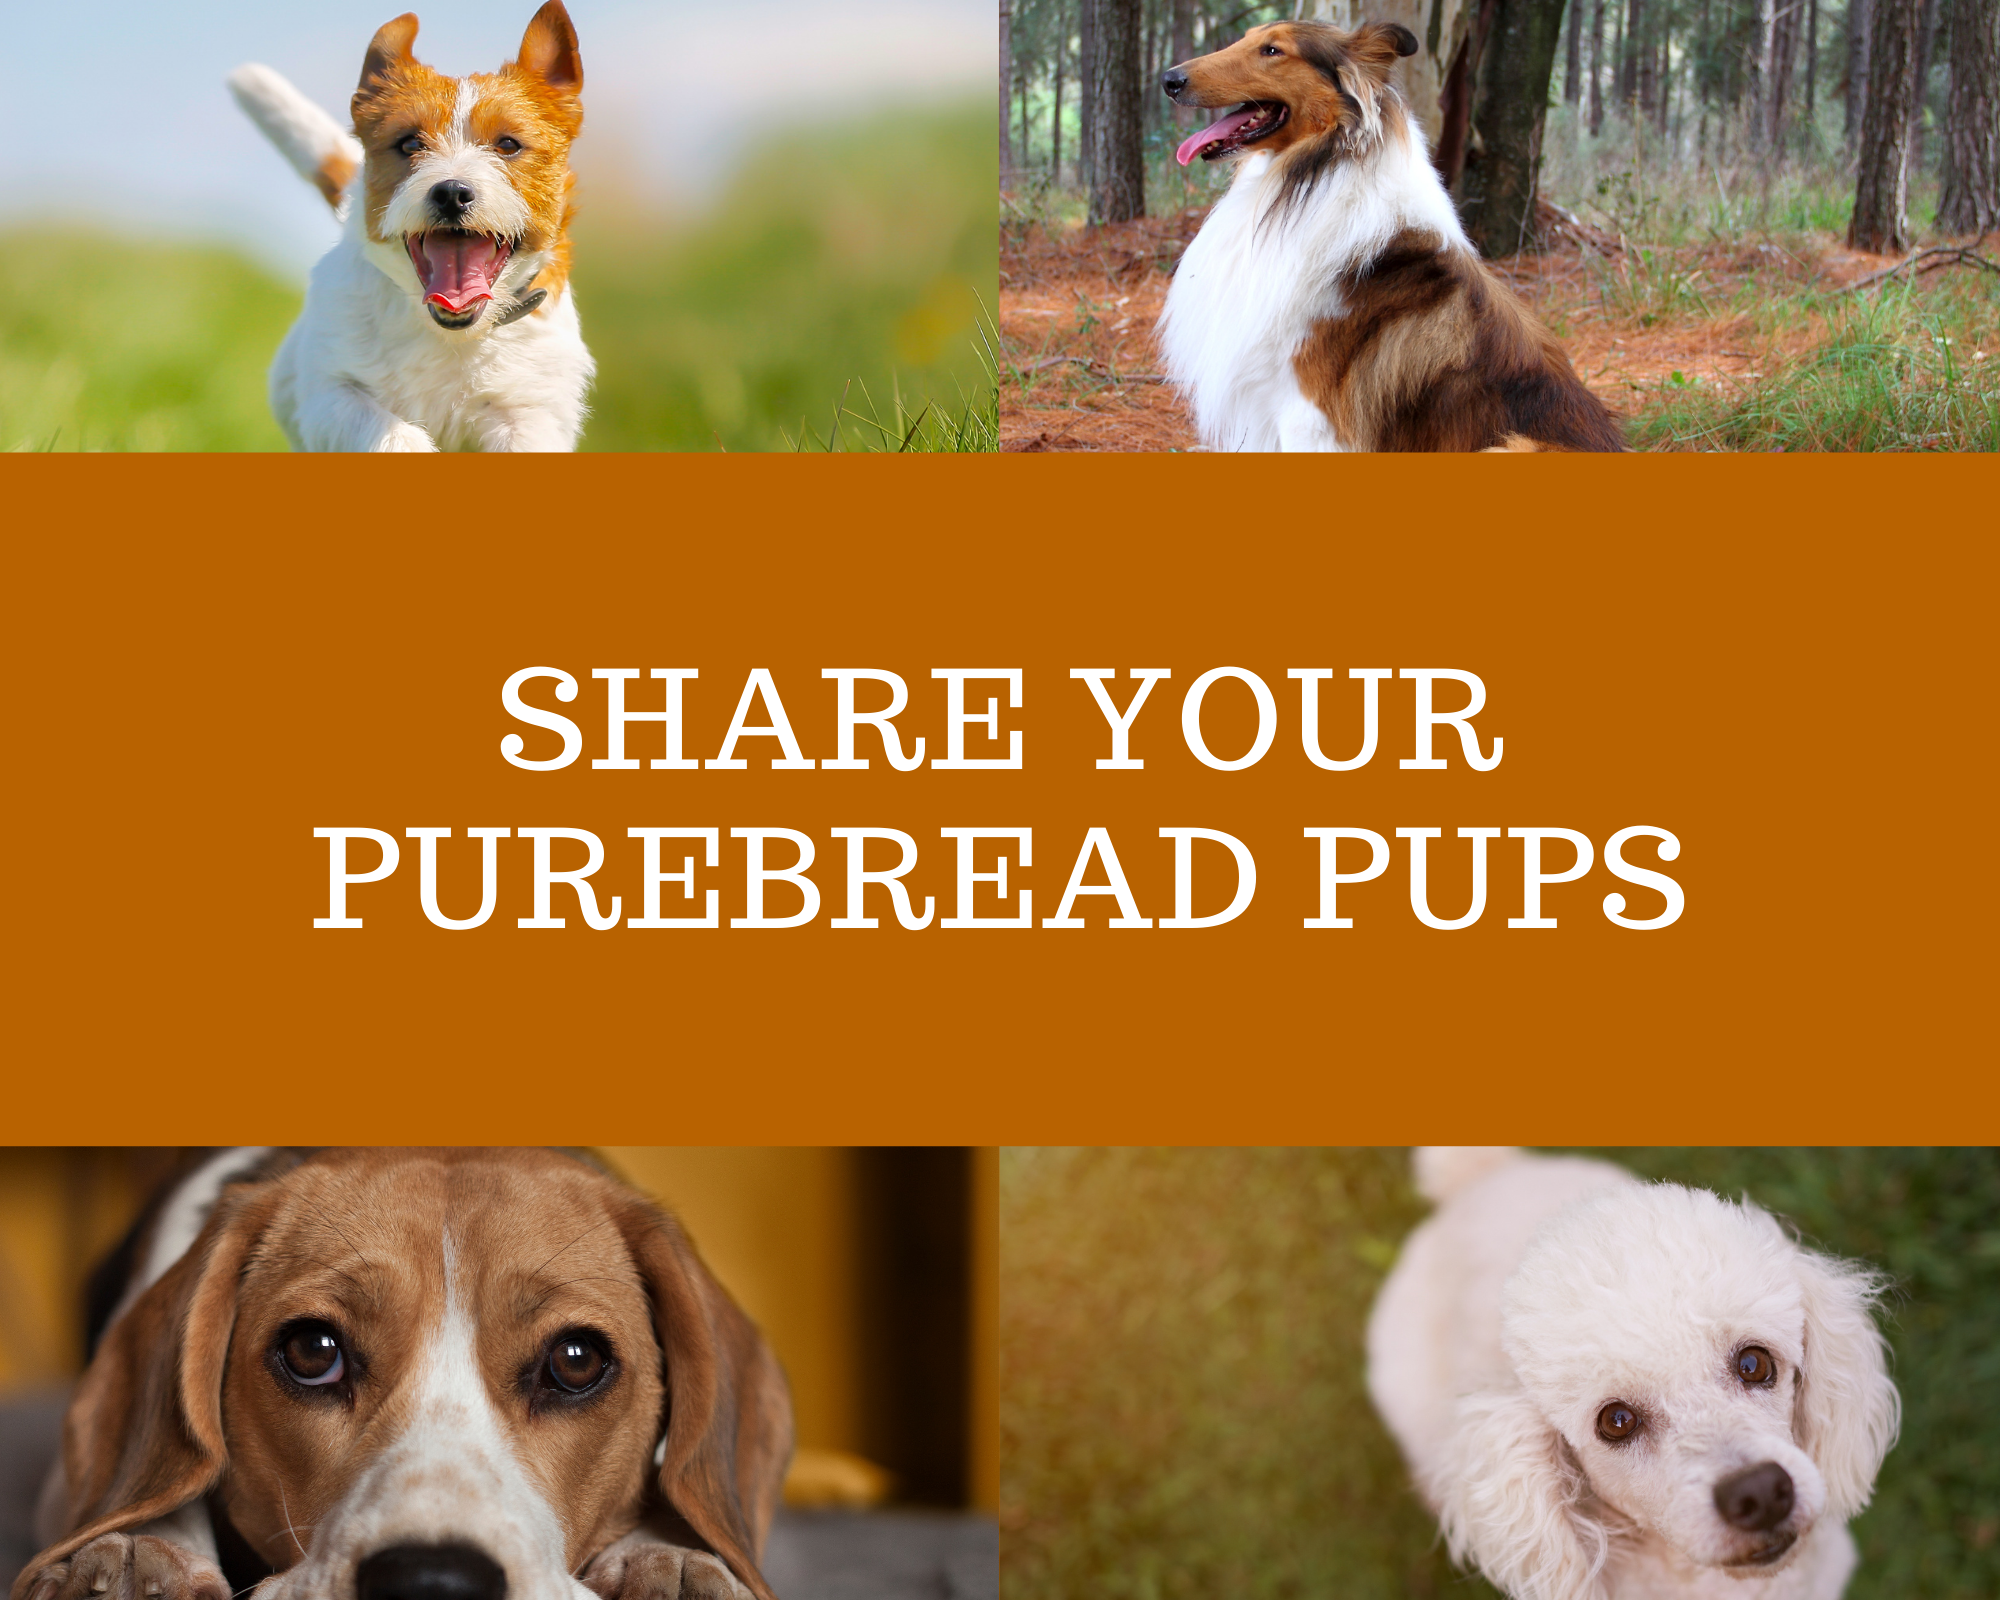 Share Your PureBread Pups